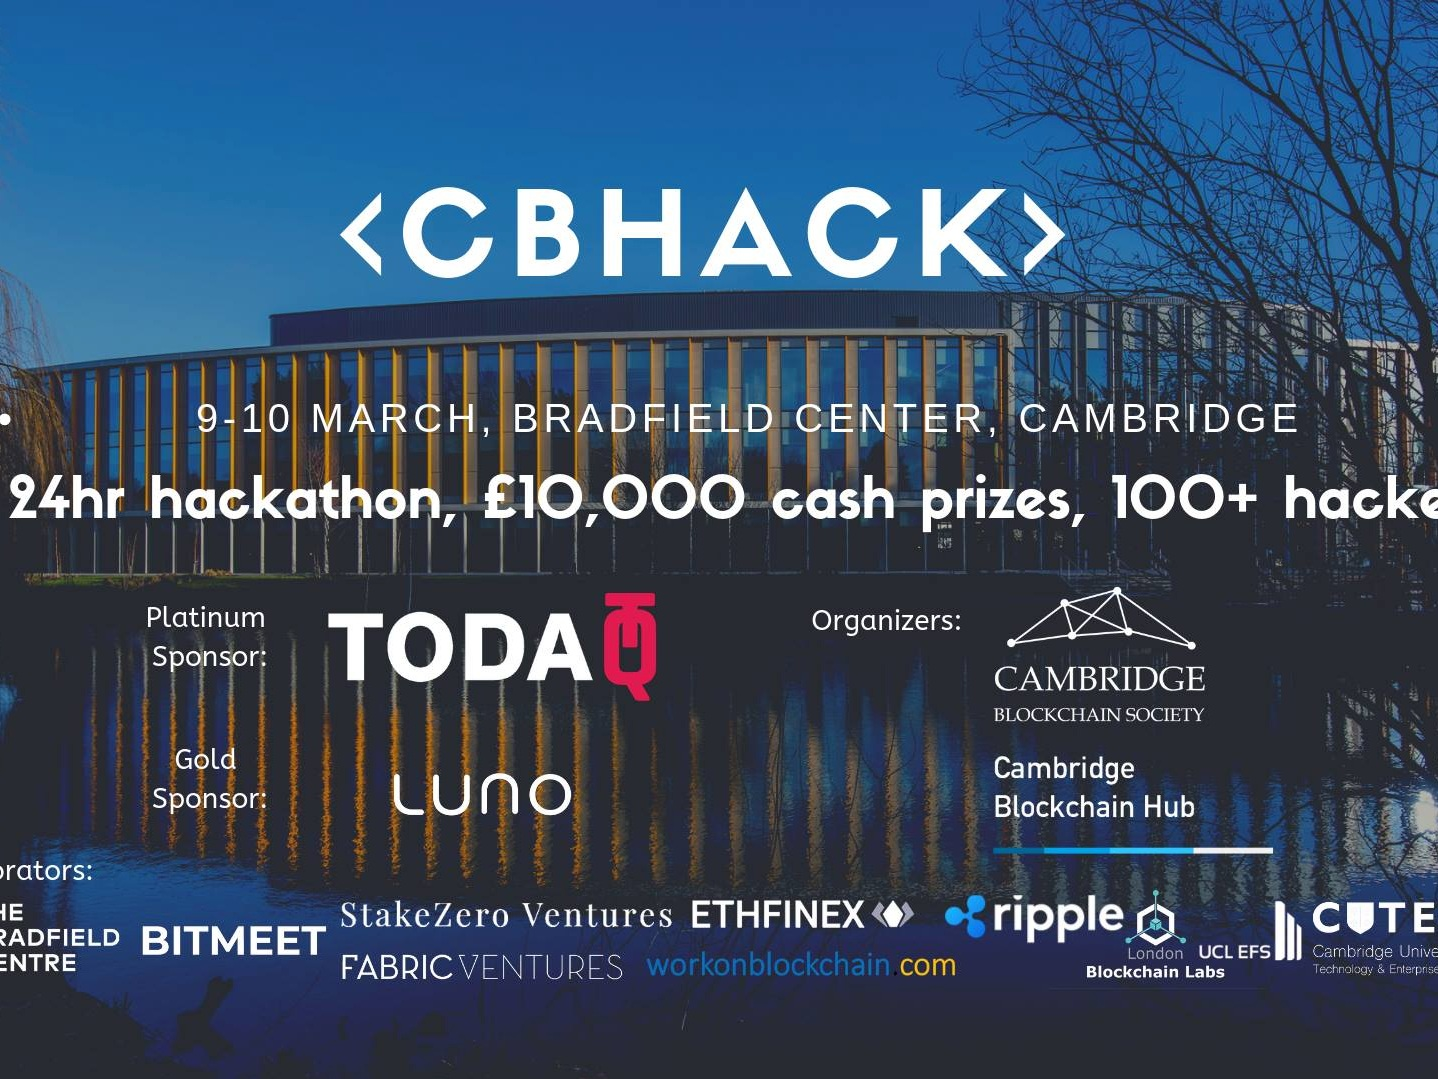 Cambridge Blockchain Hackathon - - Cambridge | 9th-10th March - We are honoured to support the Cambridge hackathon gathering over 100 technologists across UK.